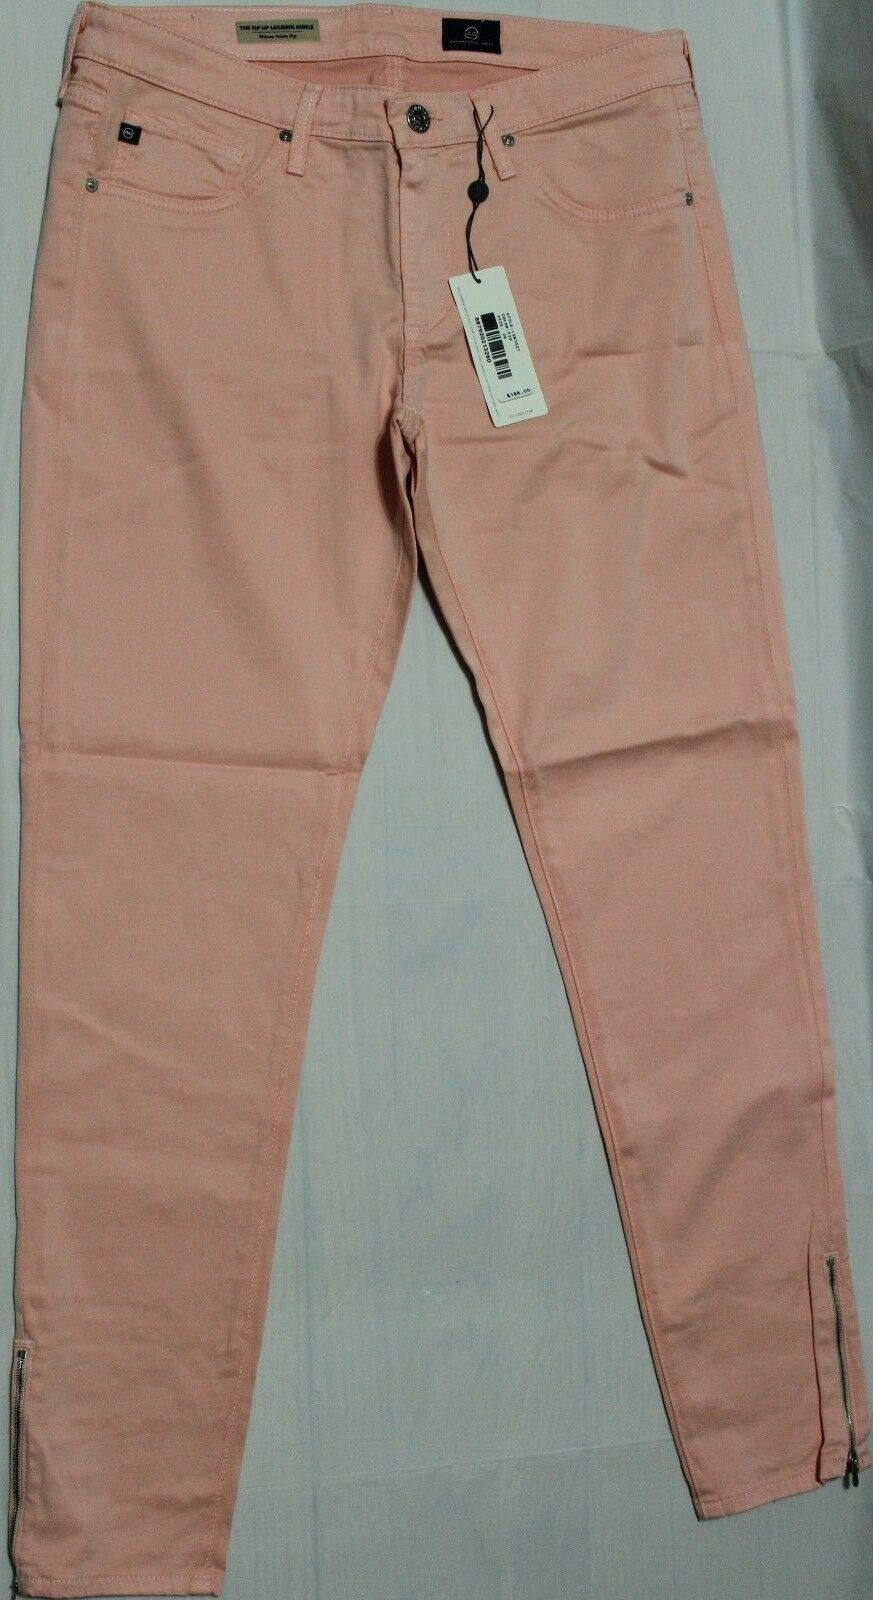 188 AG ADRIANO goldSCHMIED THE ZIP UP LEGGING SKINNY ANKLE JEANS US 29